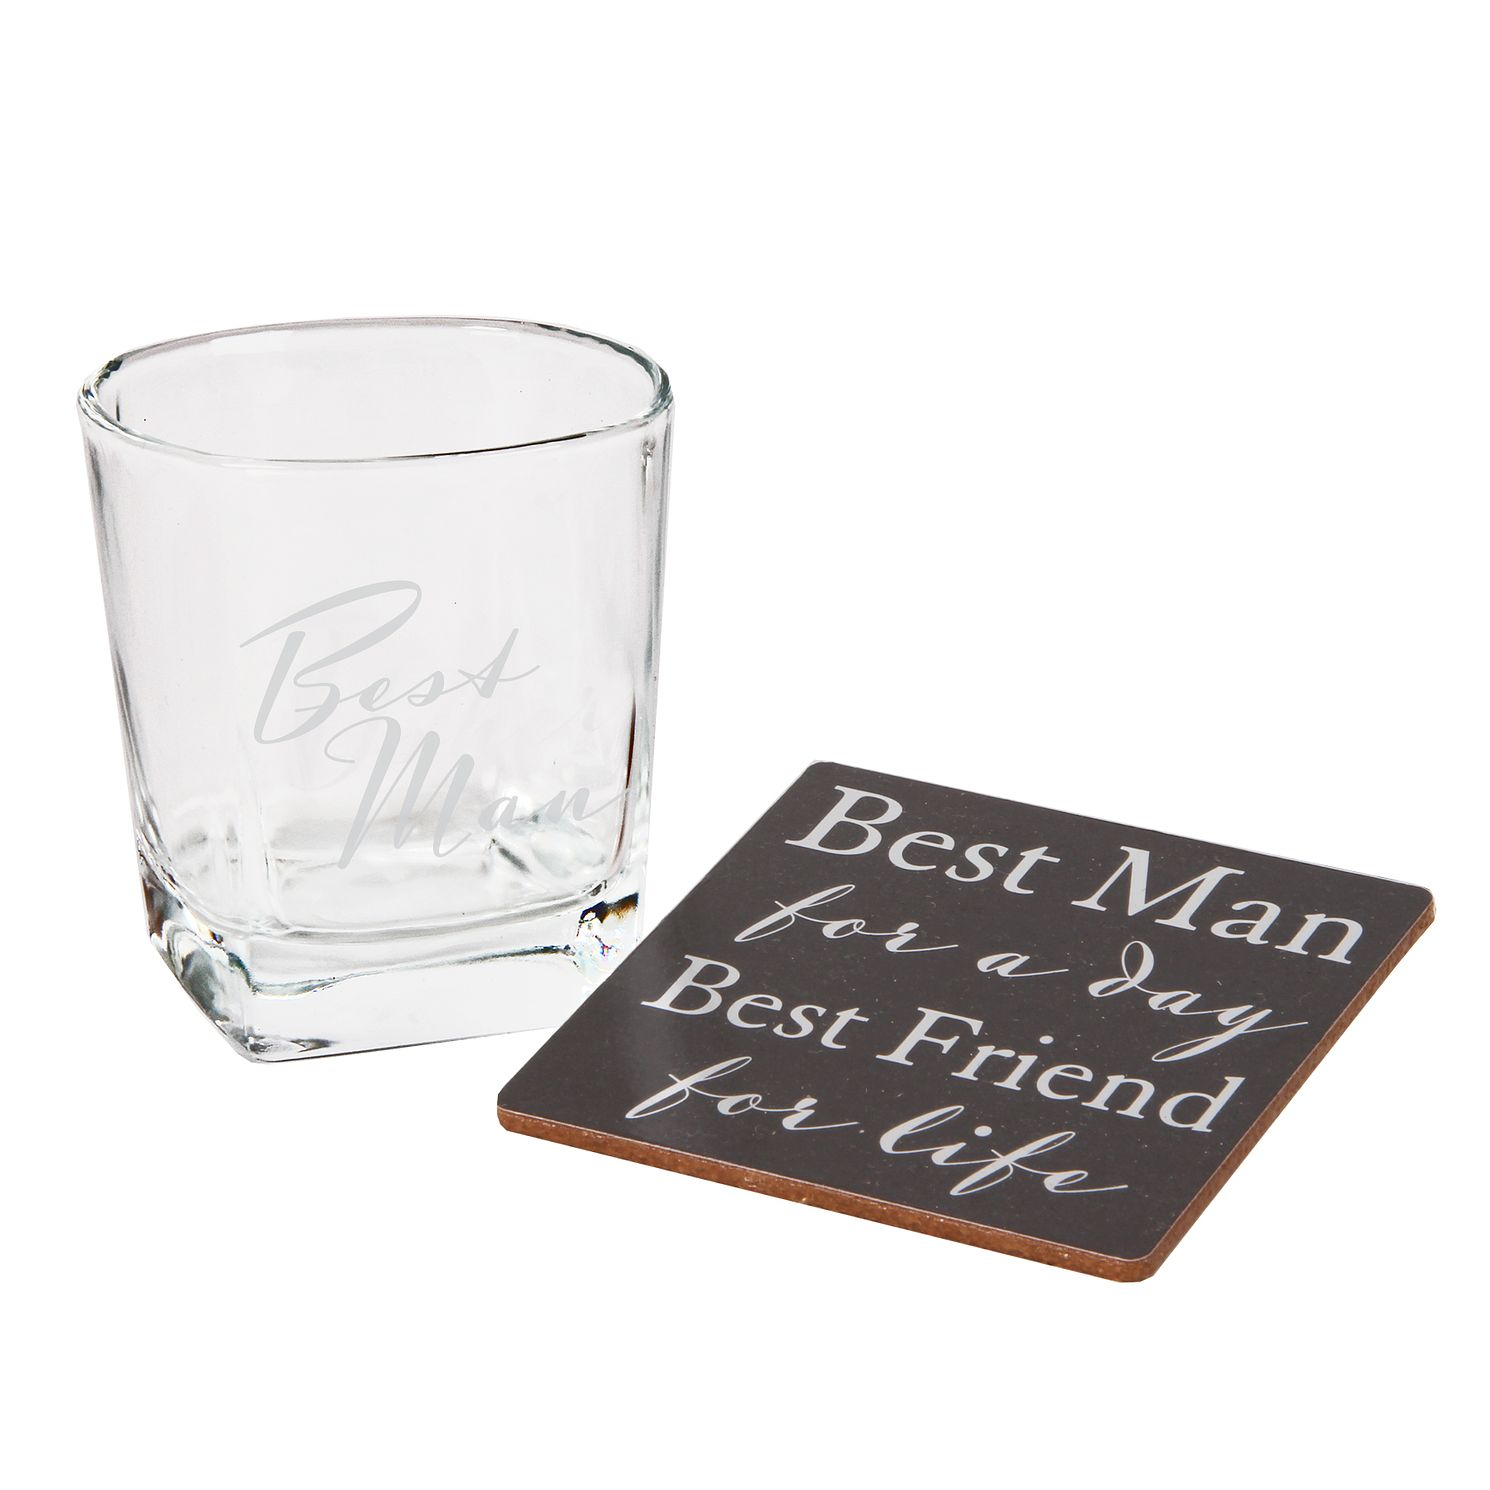 Amore Best Men's Whisky Glass and Coaster Set - Product number 8193673